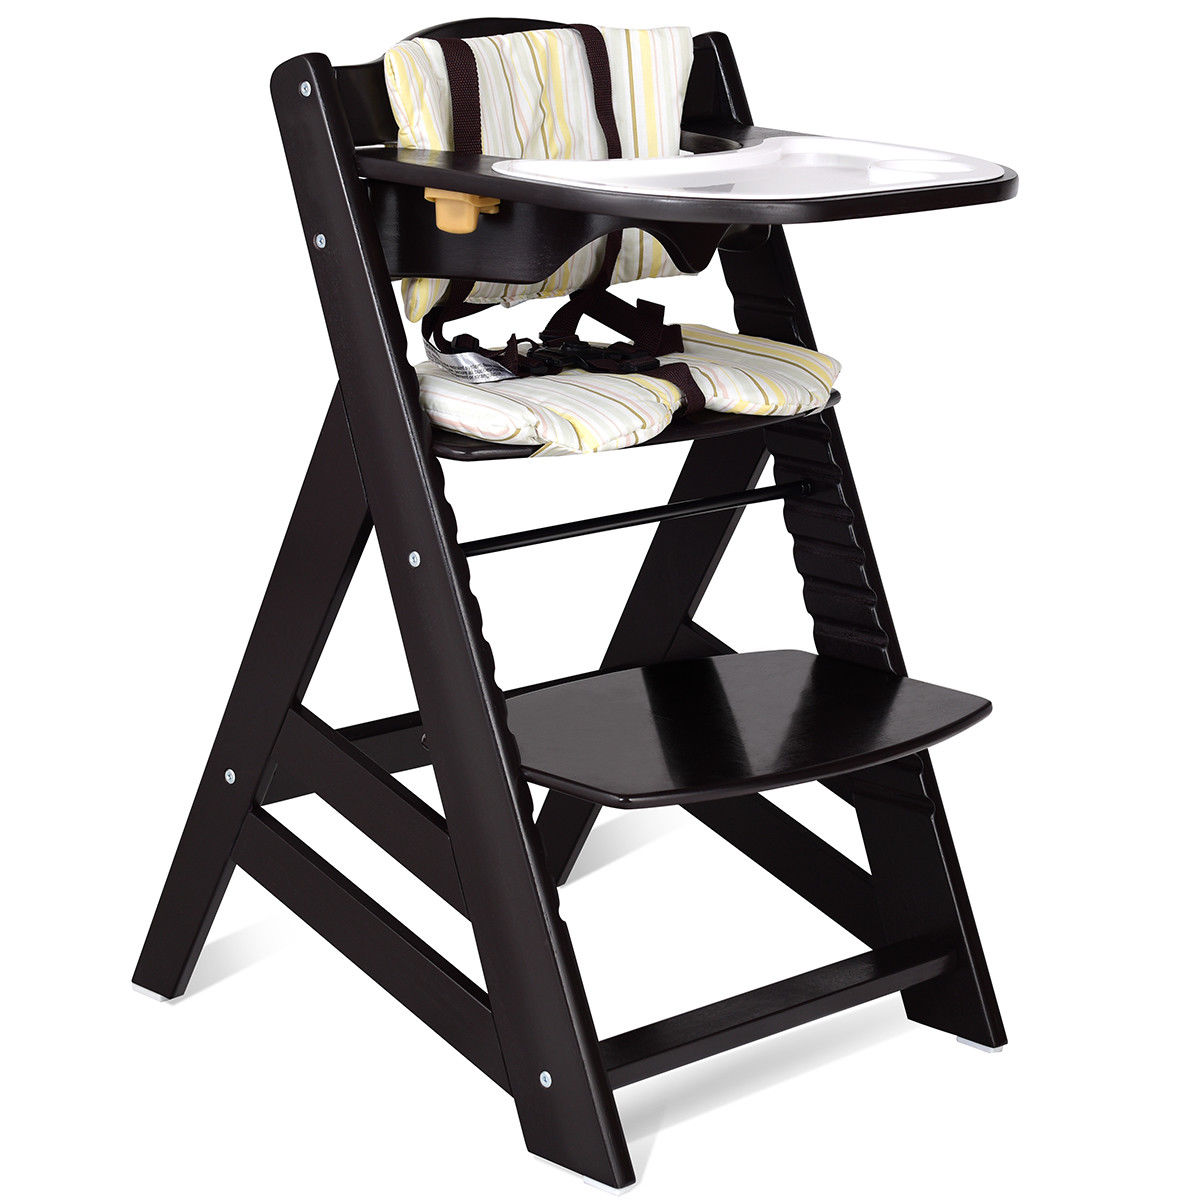 height adjustable high chair baby hammock stand indoor costway toddler wooden highchair dining w removeable tray walmart com